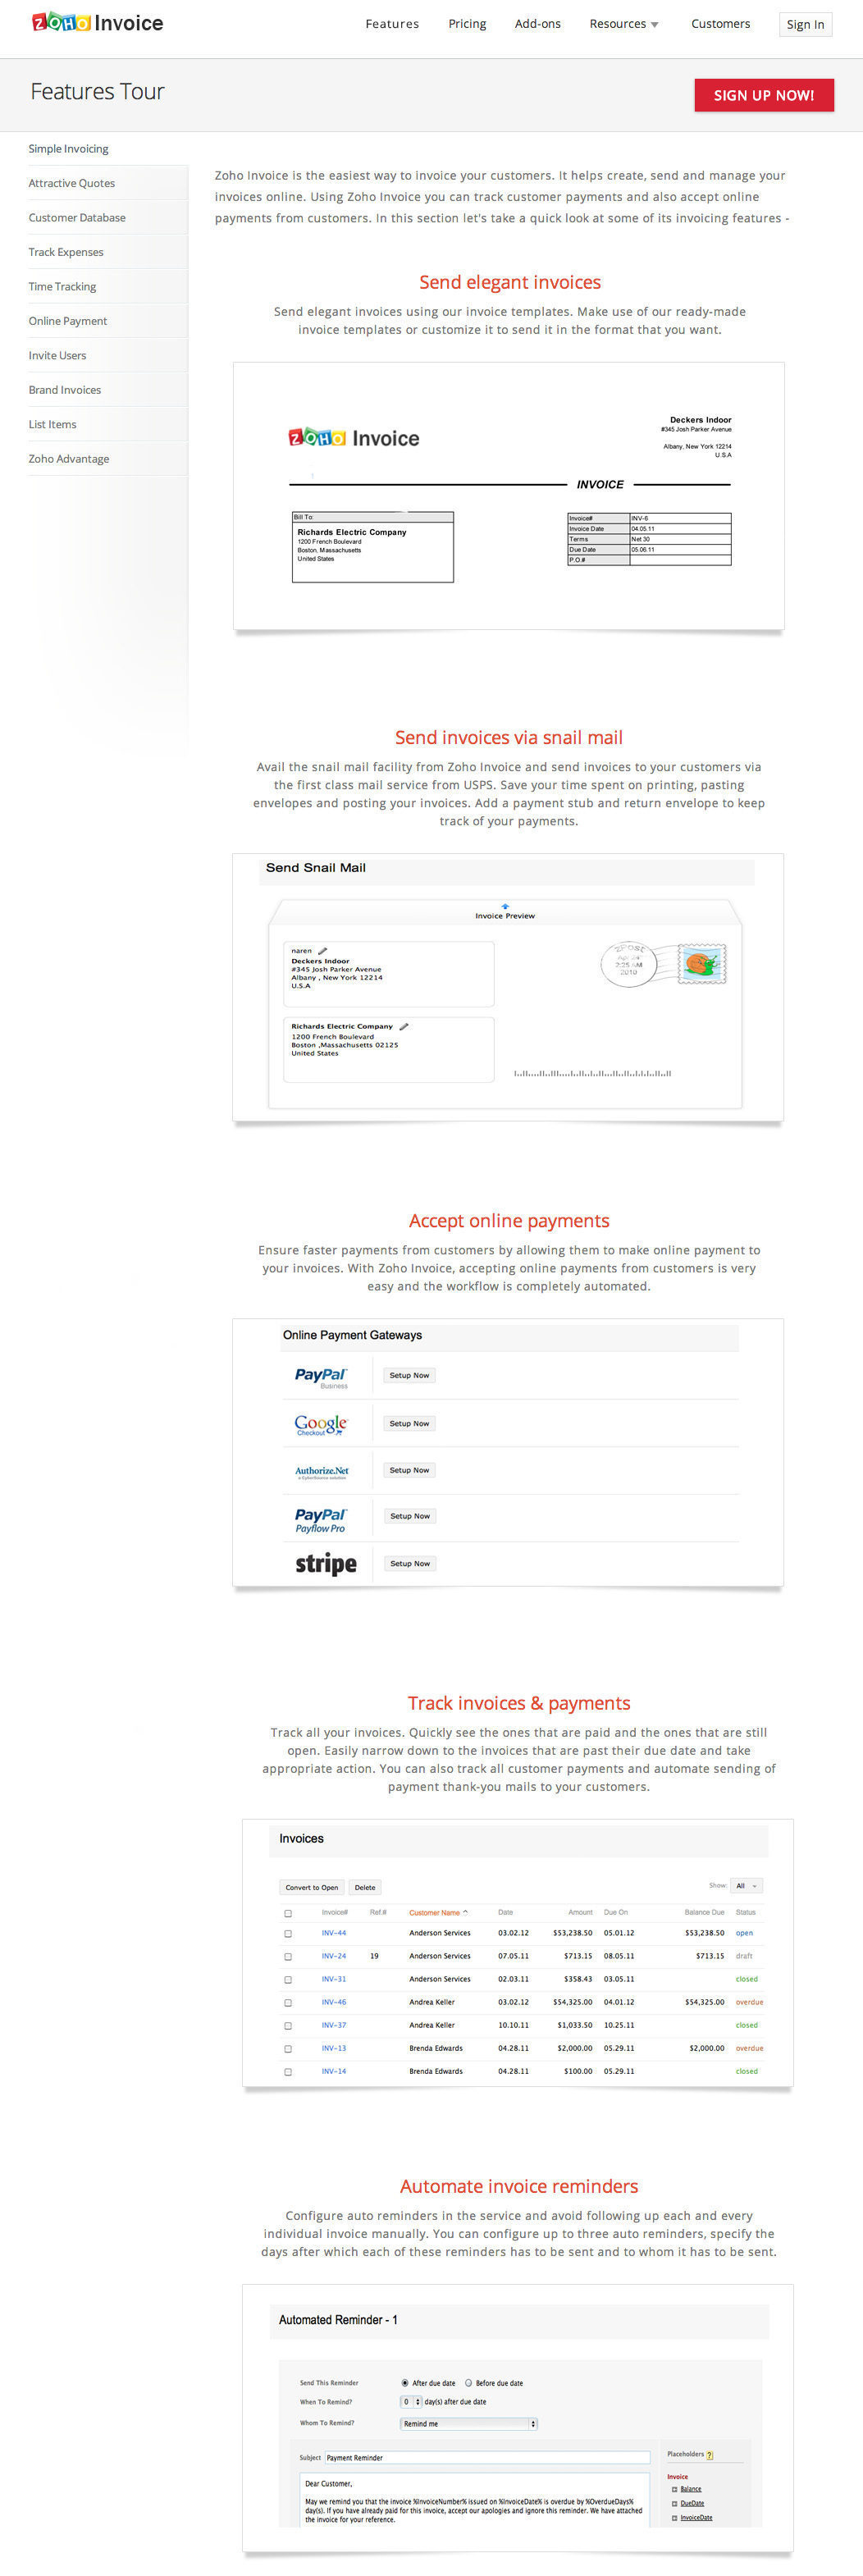 Aaaaeroincus  Pretty Top  Complaints And Reviews About Zoho Invoice With Exciting Zoho Invoice Pricing Zoho Invoice  Simple Invoicing  With Delightful Ebay Invoice Example Also Blank Commercial Invoice Pdf In Addition What Invoice Means And Videography Invoice As Well As Consignment Invoice Template Additionally Quickbook Invoices From Consumeraffairscom With Aaaaeroincus  Exciting Top  Complaints And Reviews About Zoho Invoice With Delightful Zoho Invoice Pricing Zoho Invoice  Simple Invoicing  And Pretty Ebay Invoice Example Also Blank Commercial Invoice Pdf In Addition What Invoice Means From Consumeraffairscom